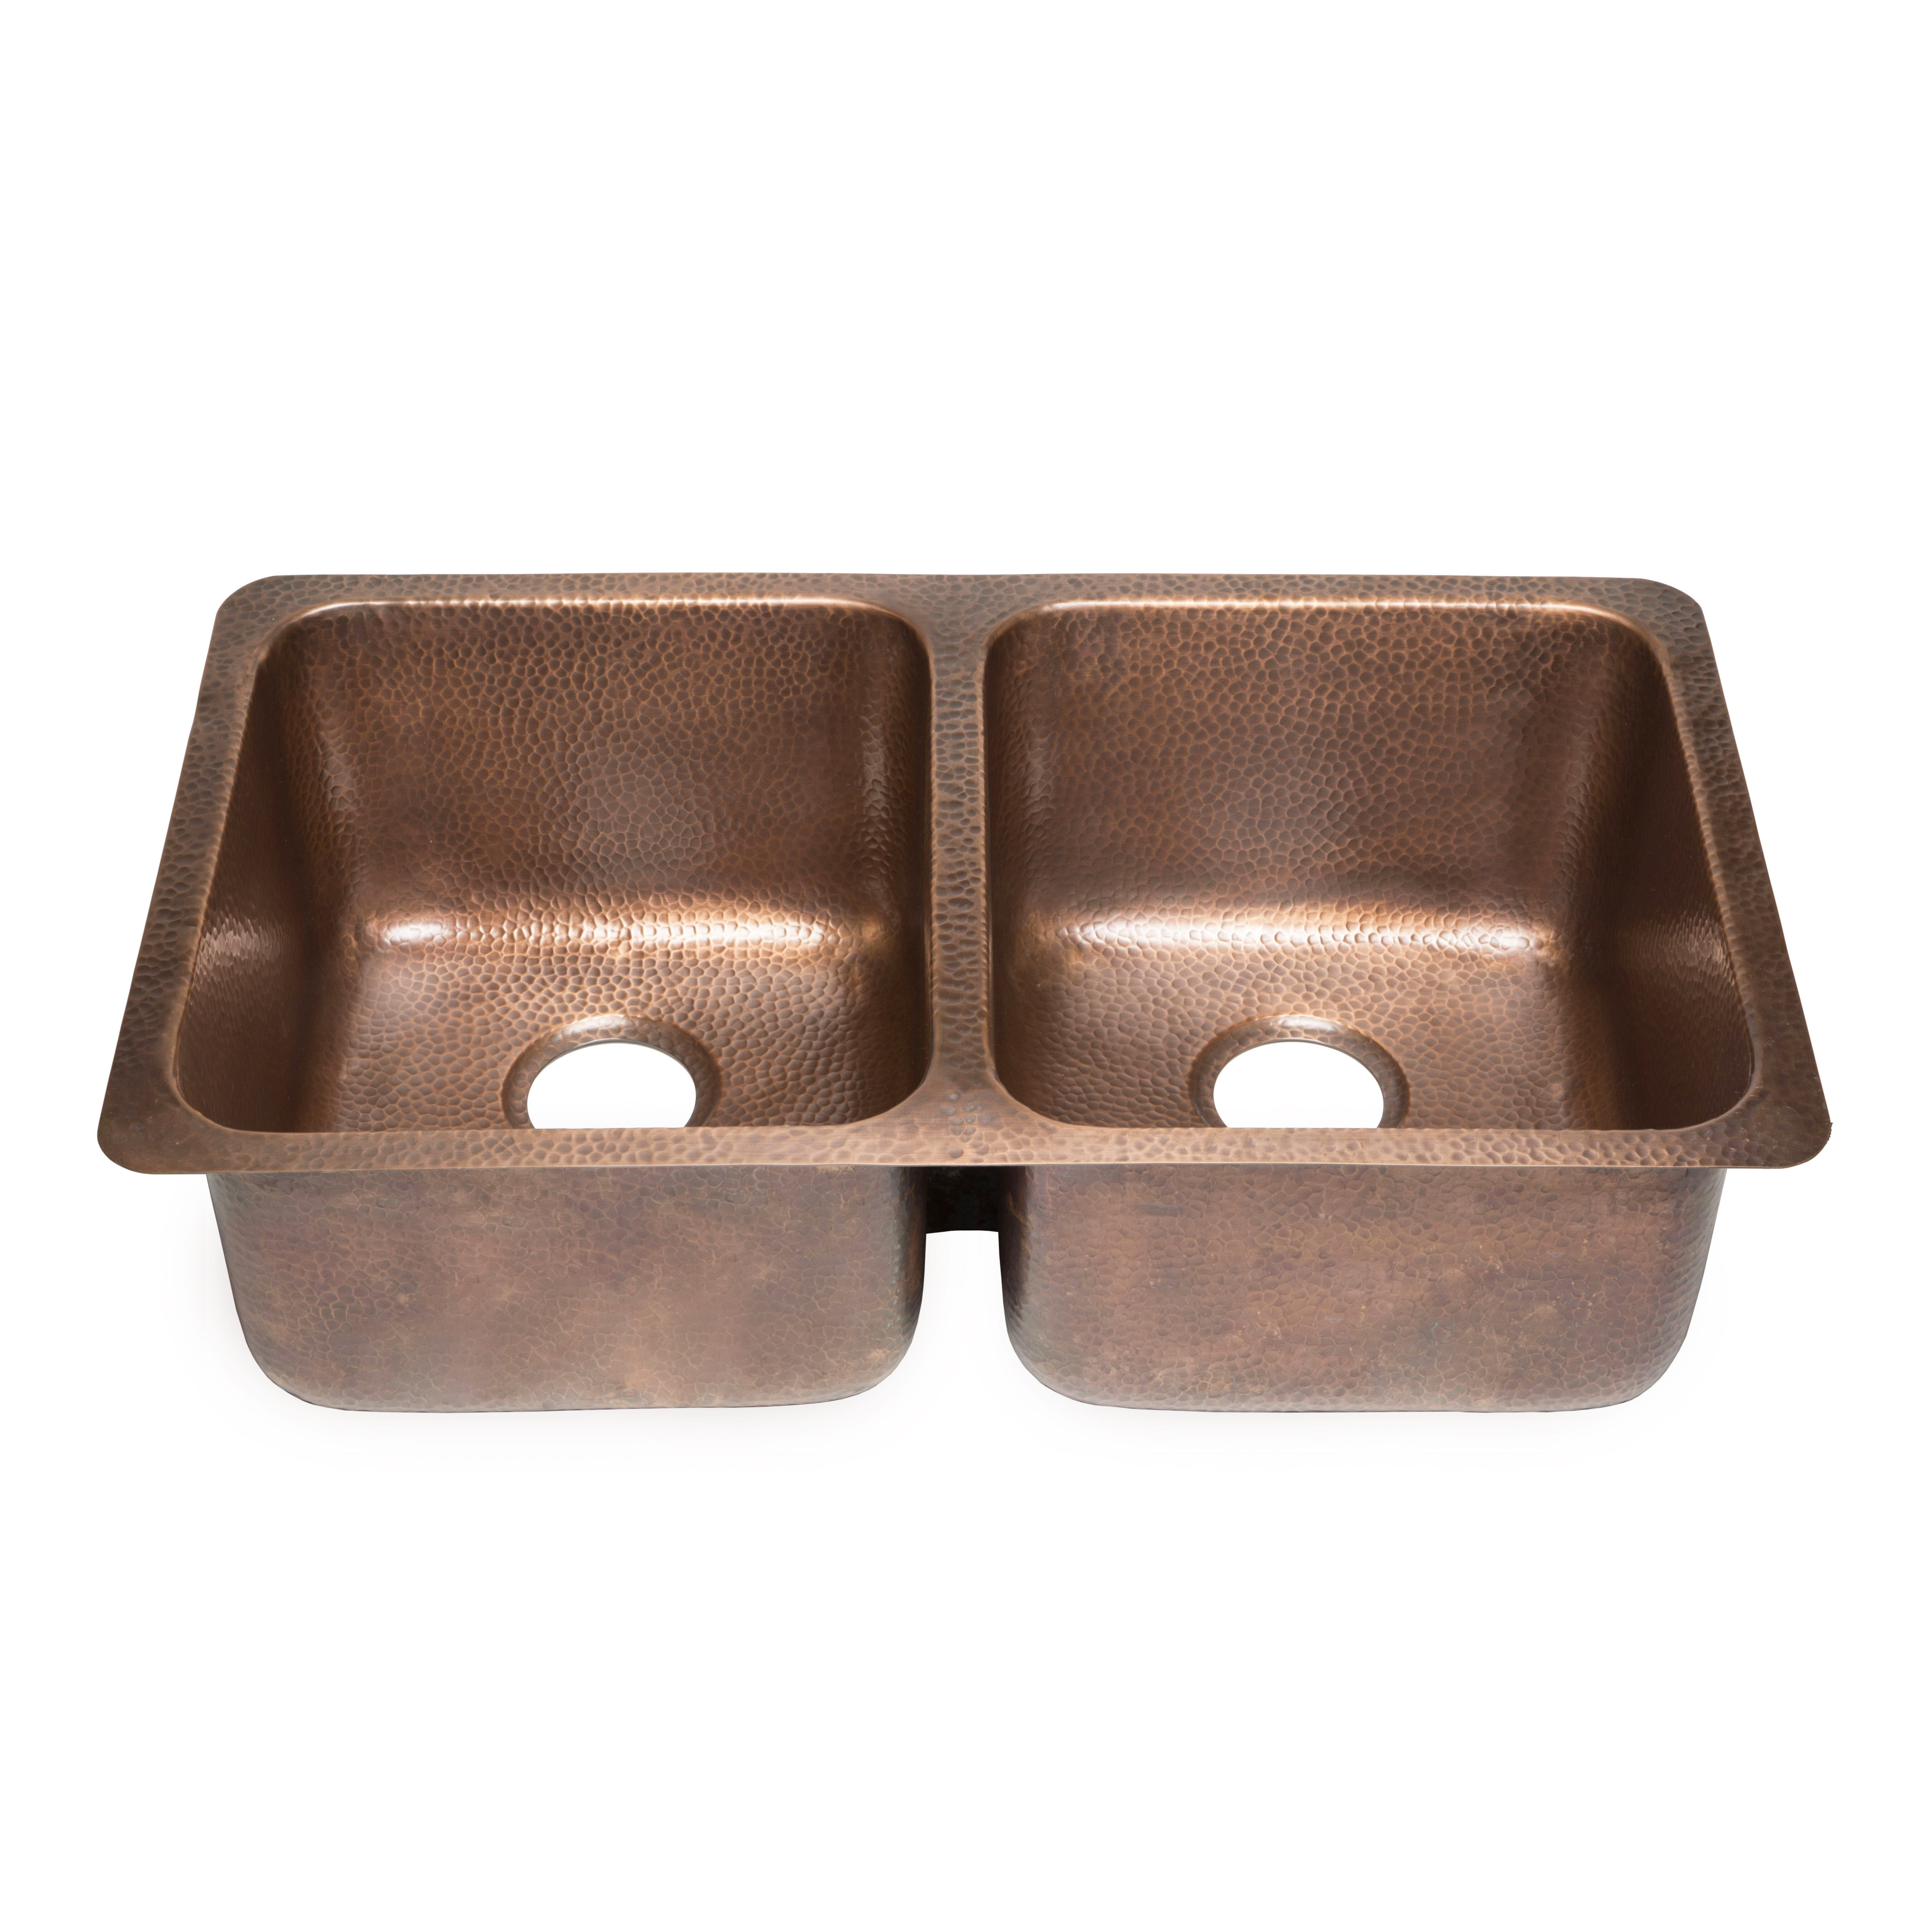 Small Double Kitchen Sinks Kitchen Sink Small Double Kitchen Sink Small Double Sinks On Sich